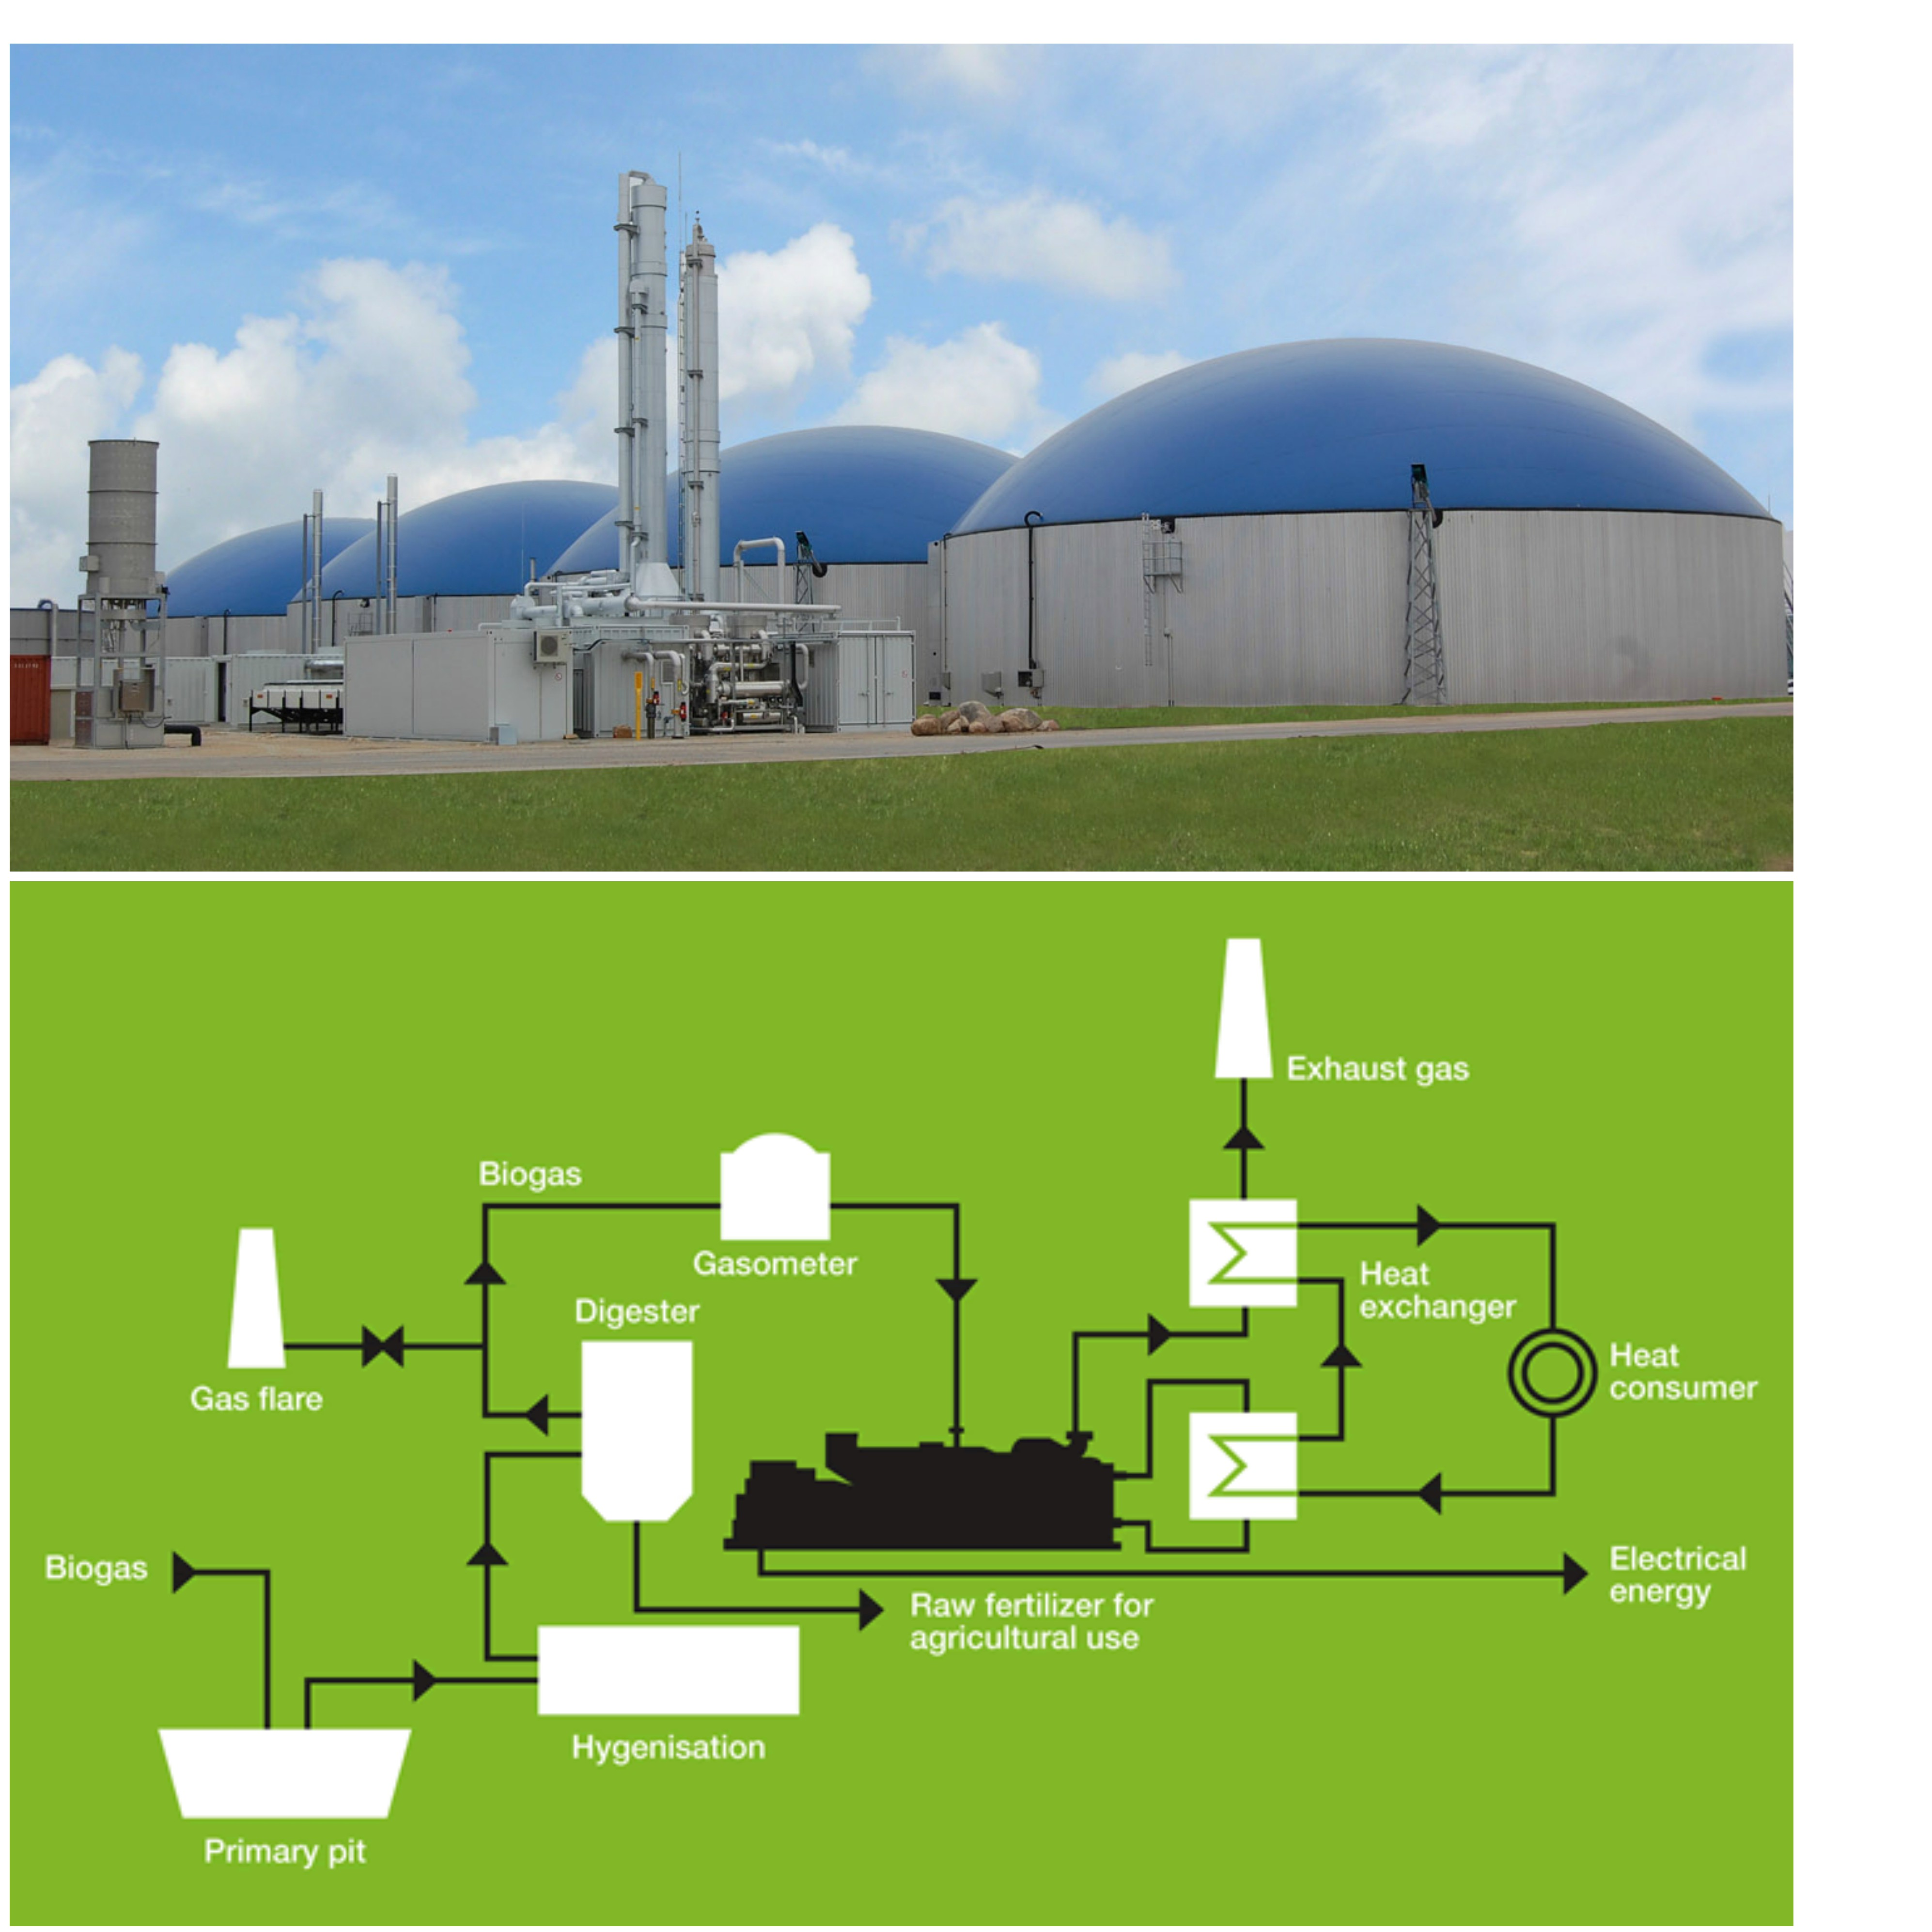 Youth Citizen Entrepreneurship Competition Biogas Large Plant Bio Gas Diagram Srv Www Vhosts User3101 Html